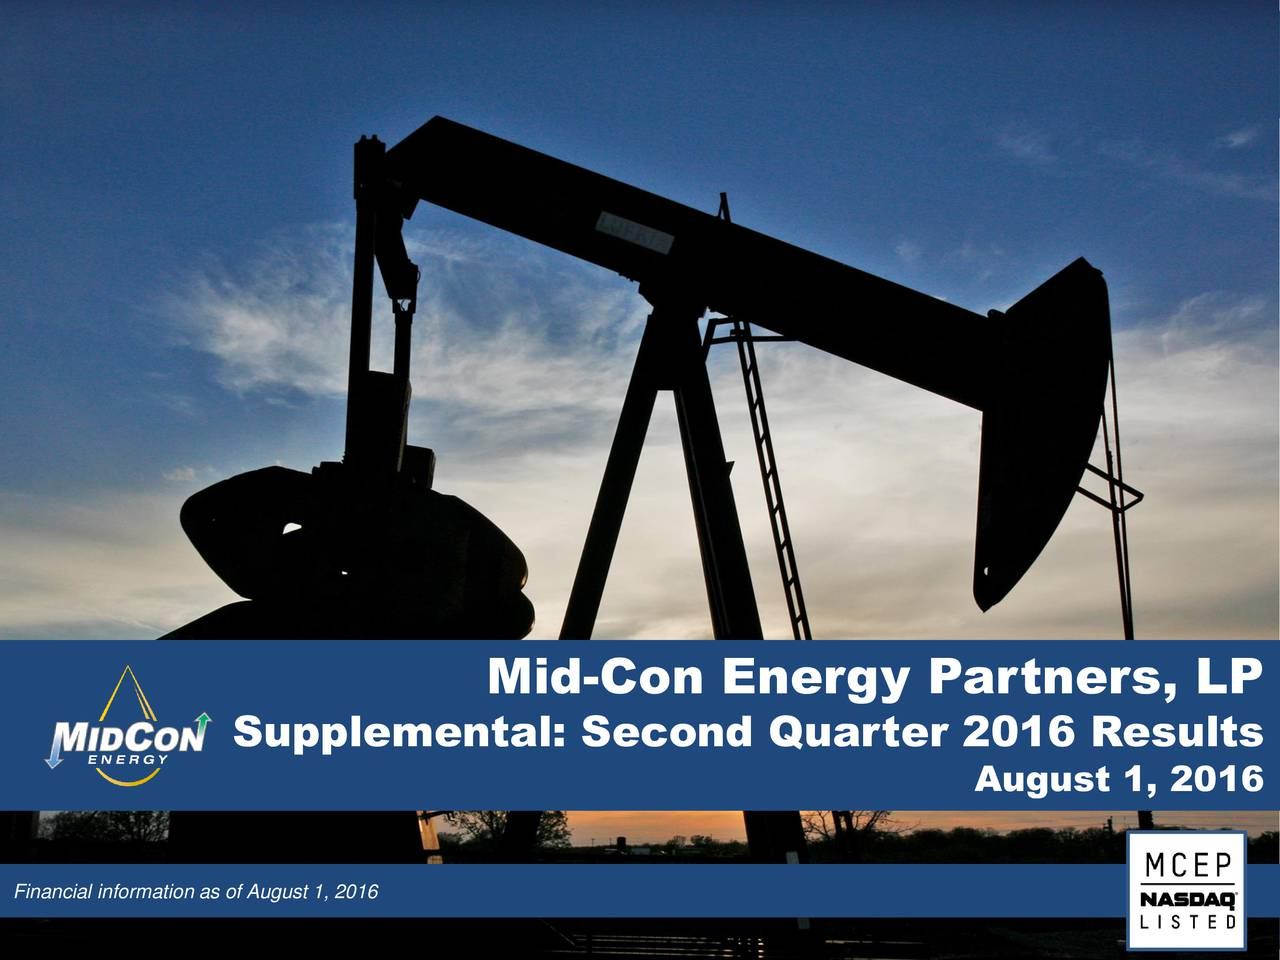 Supplemental: Second Quarter 2016 Results August 1, 2016 Financial information as of August 1, 2016 NASDAQ: MCEP www.midconenergypartners.com 1